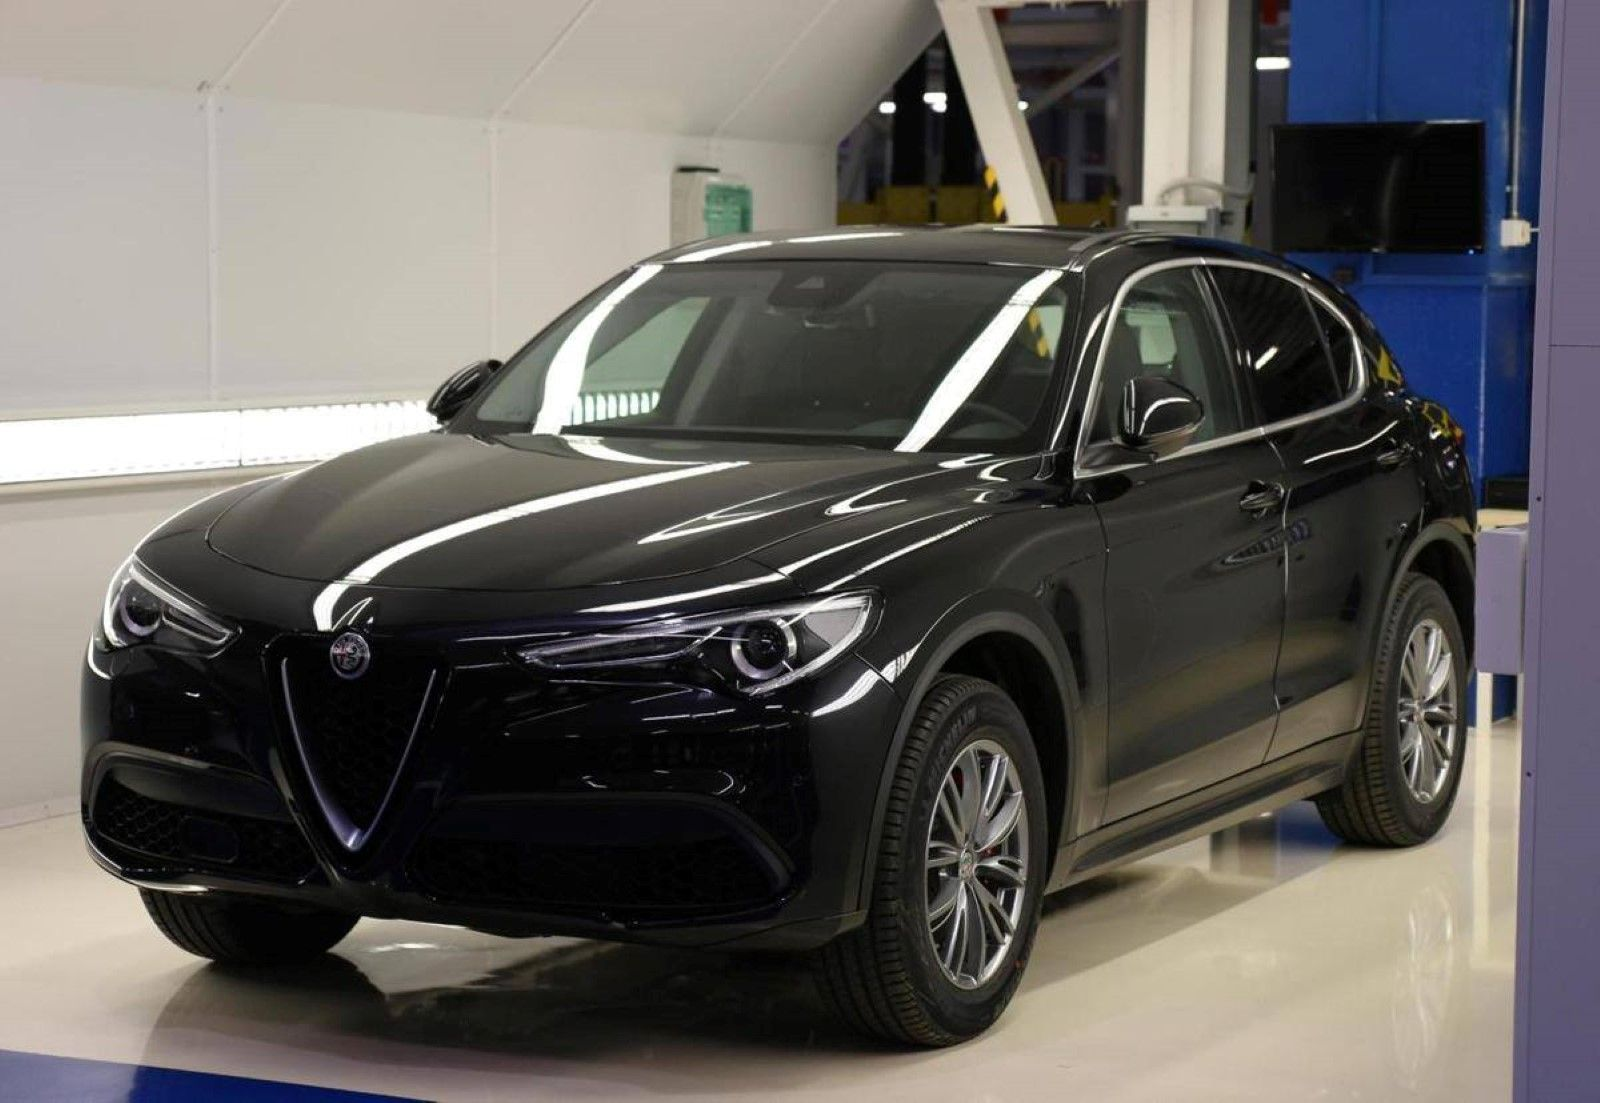 de gewone alfa romeo stelvio uit alle hoeken. Black Bedroom Furniture Sets. Home Design Ideas